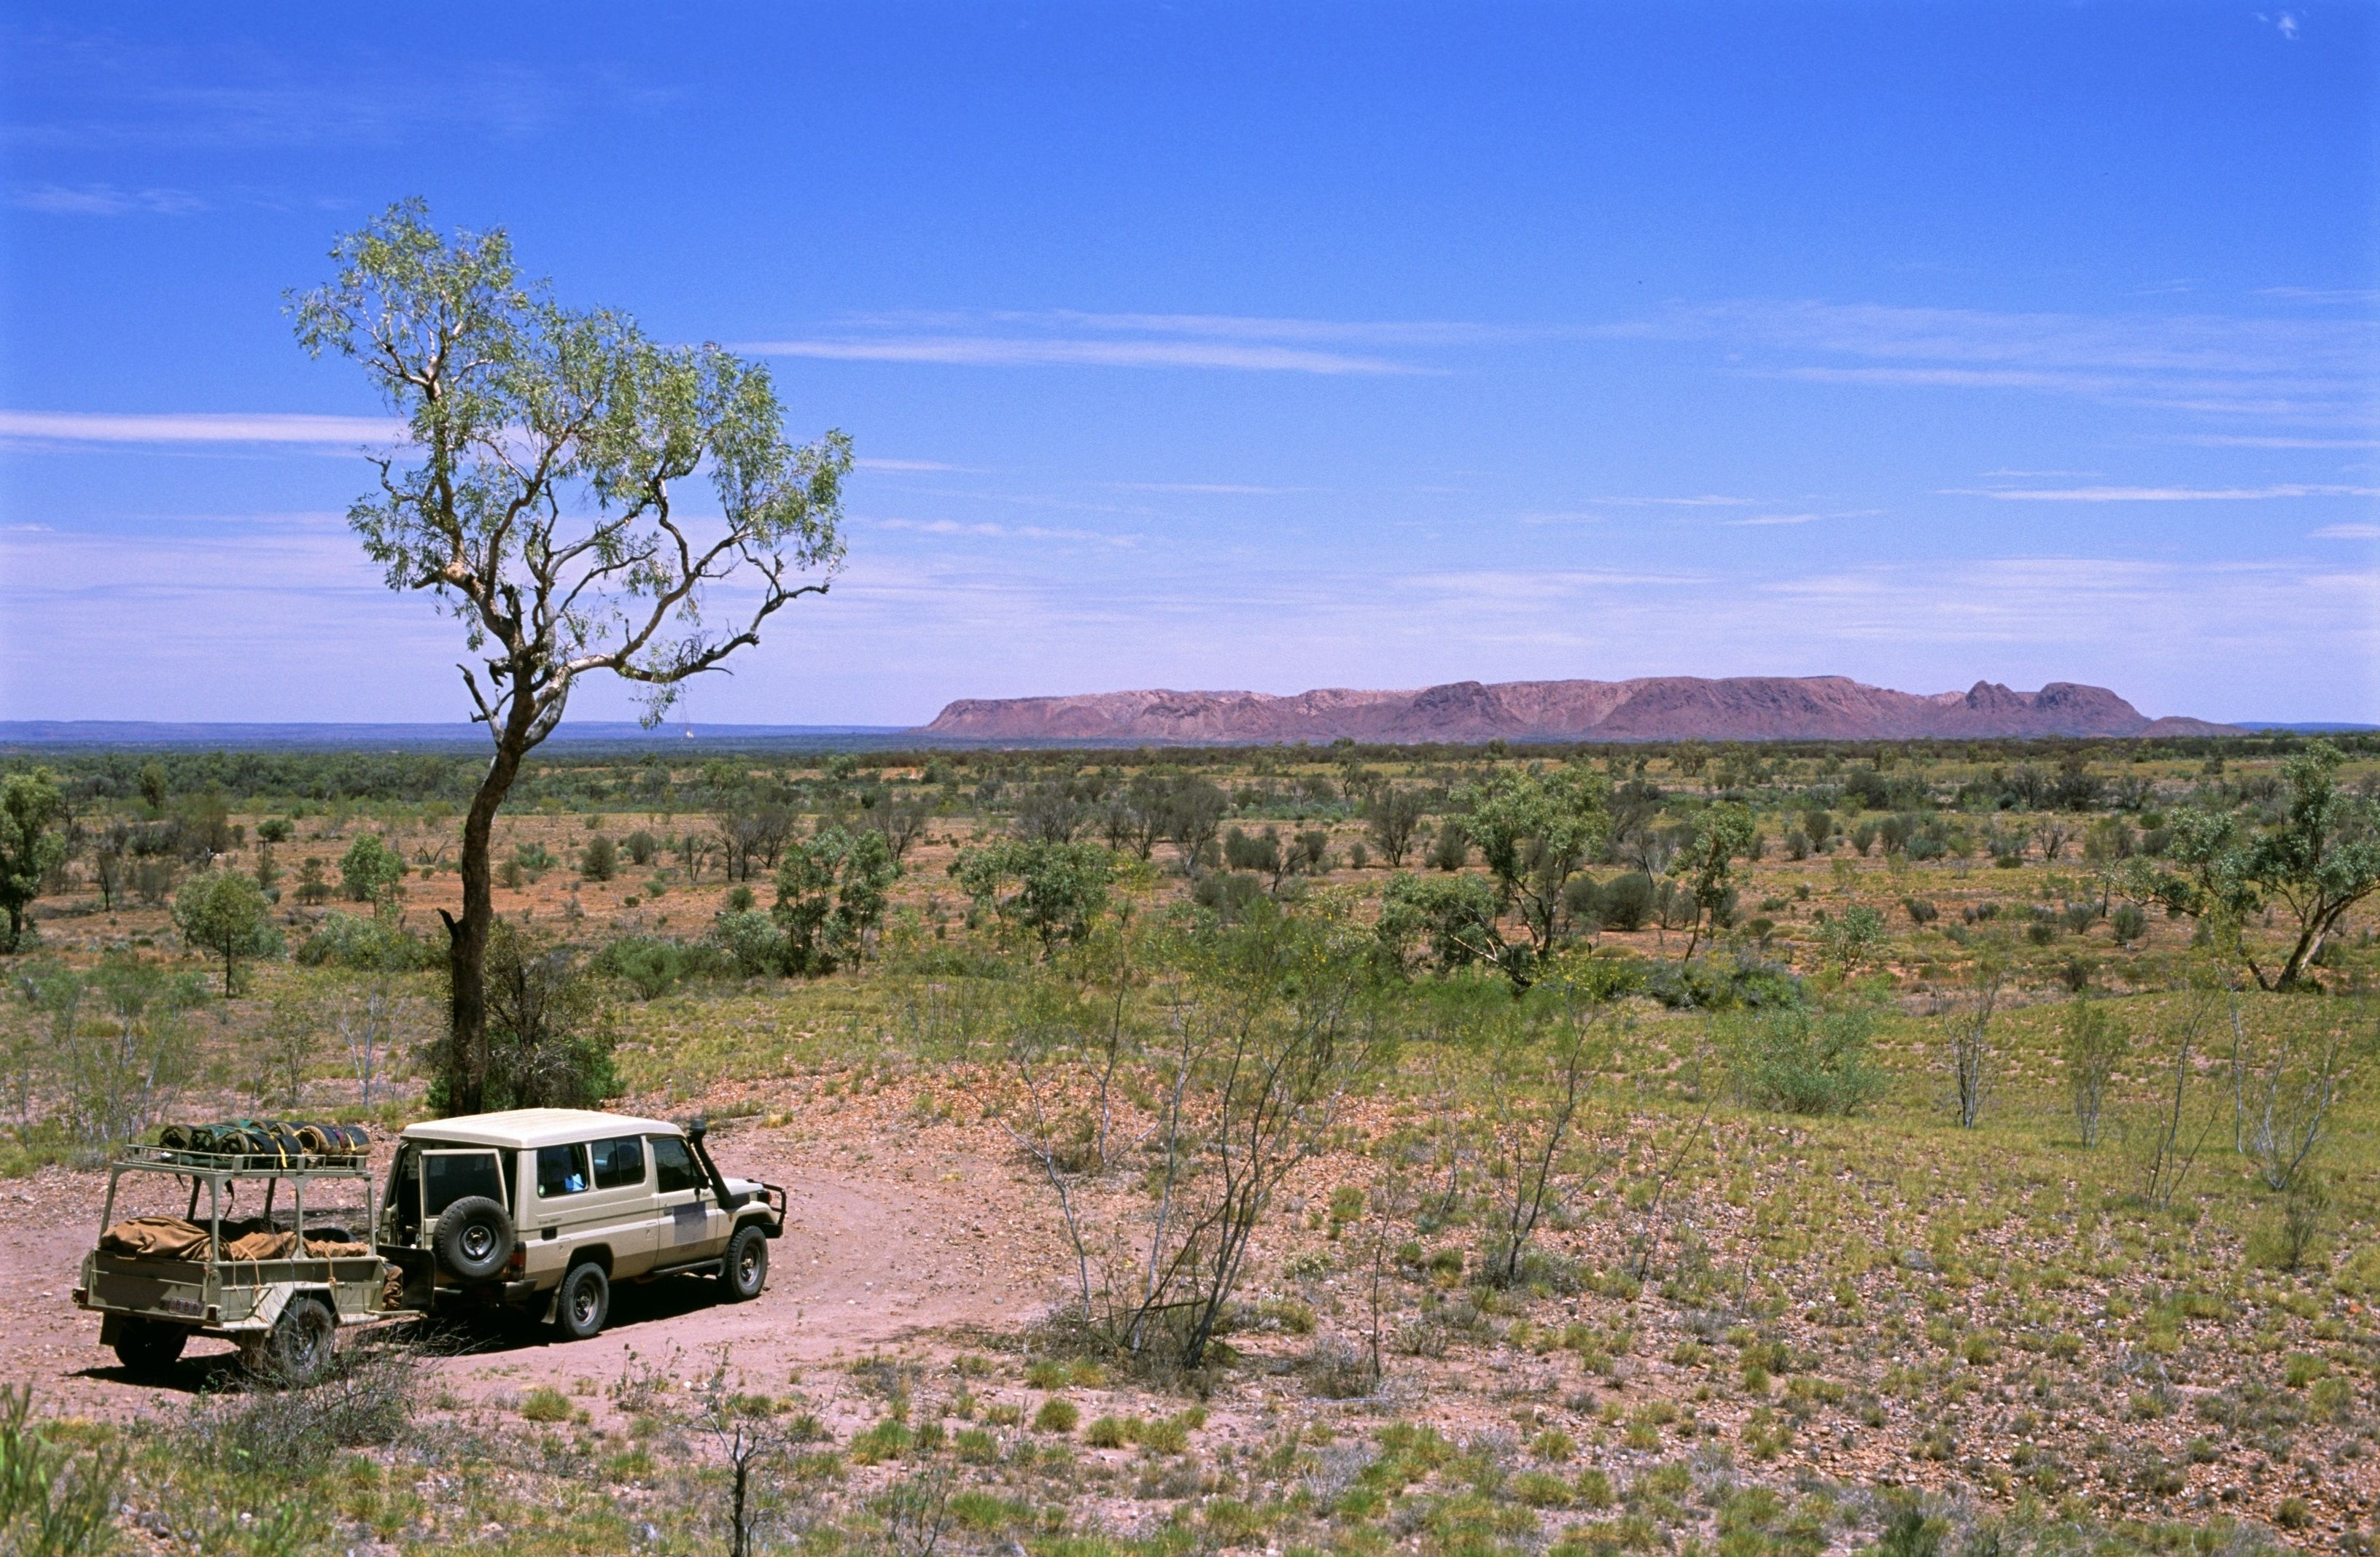 4x4 vehicle towing a trailer parked under a small tree overlooking an expanse of beautiful scenic countryside while out enjoying an Australian outback safari